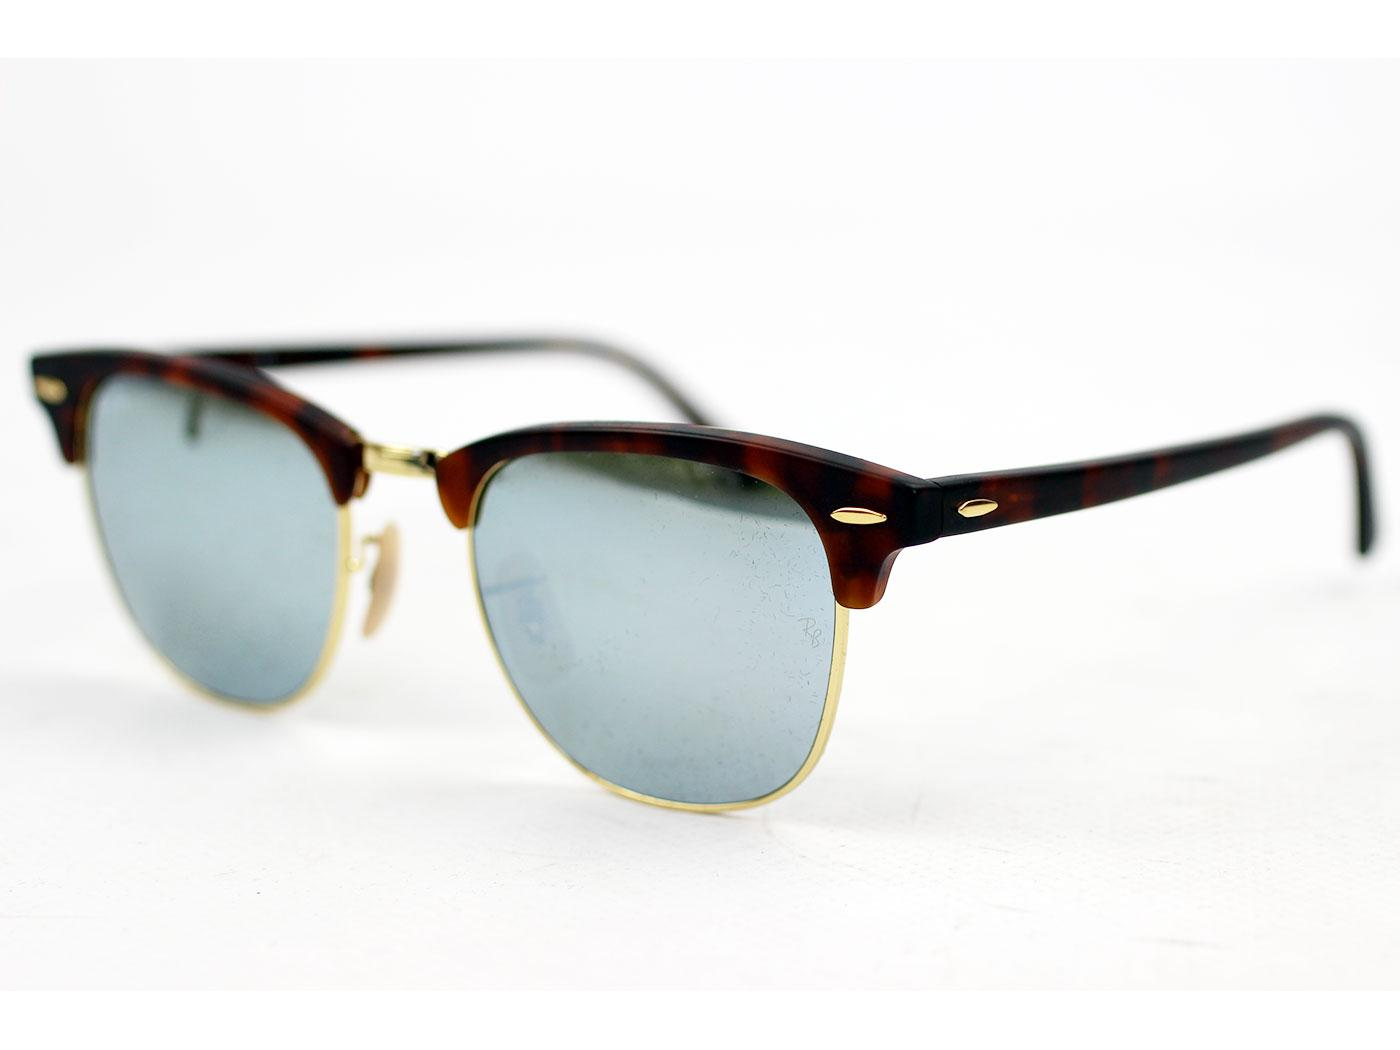 Ray-Ban Clubmaster Retro Mod Sunglasses (Mirror)